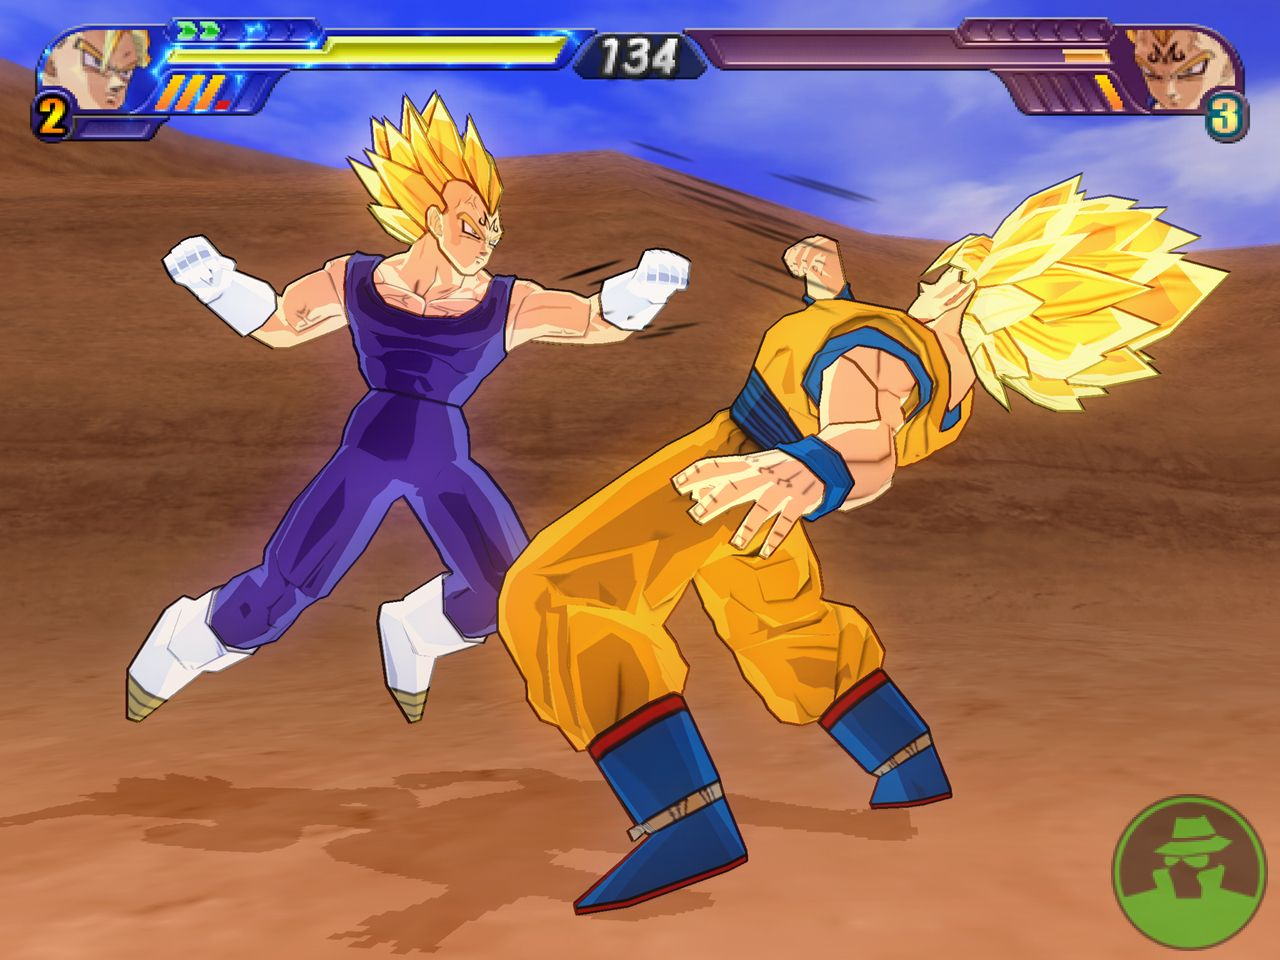 dragon ball z budokai tenkaichi 3 download free games